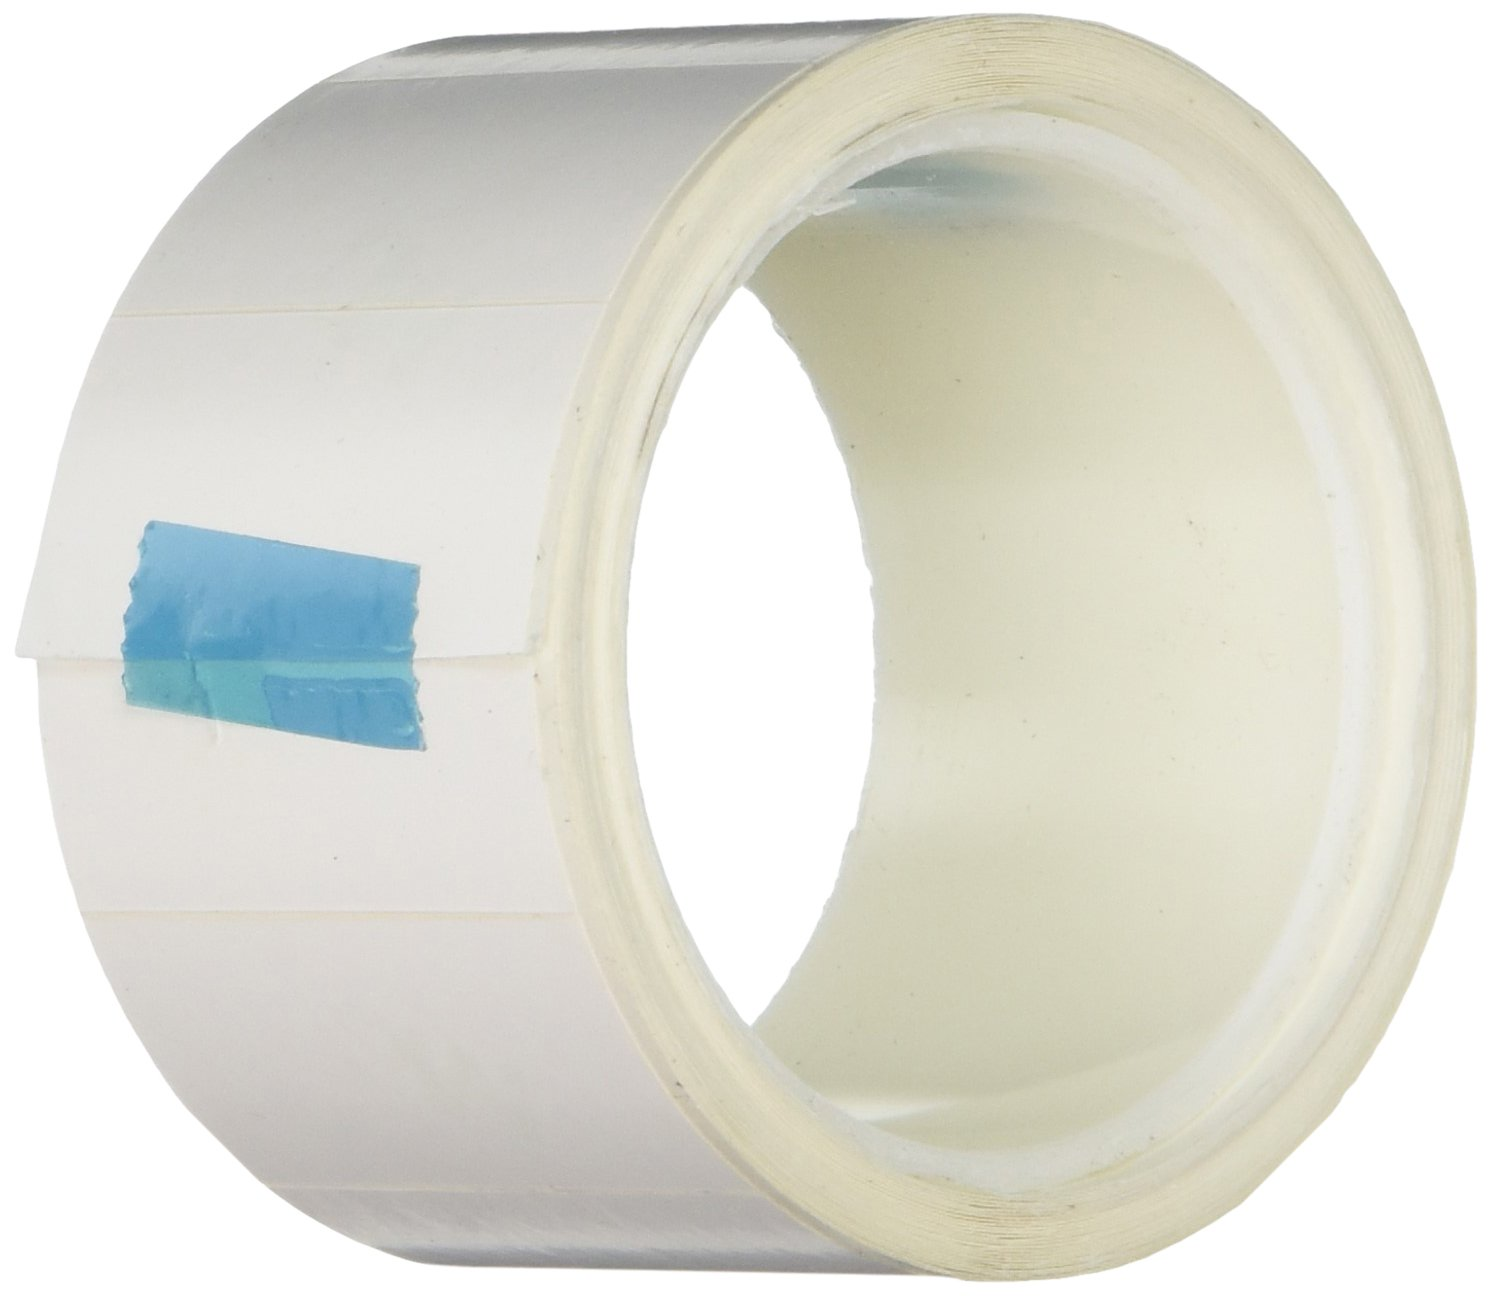 Diversified Biotech BAKE-250 Bake Tags Label for Oven Sterilization, 1.50'' Length x 0.75'' Width, White (Roll of 250)